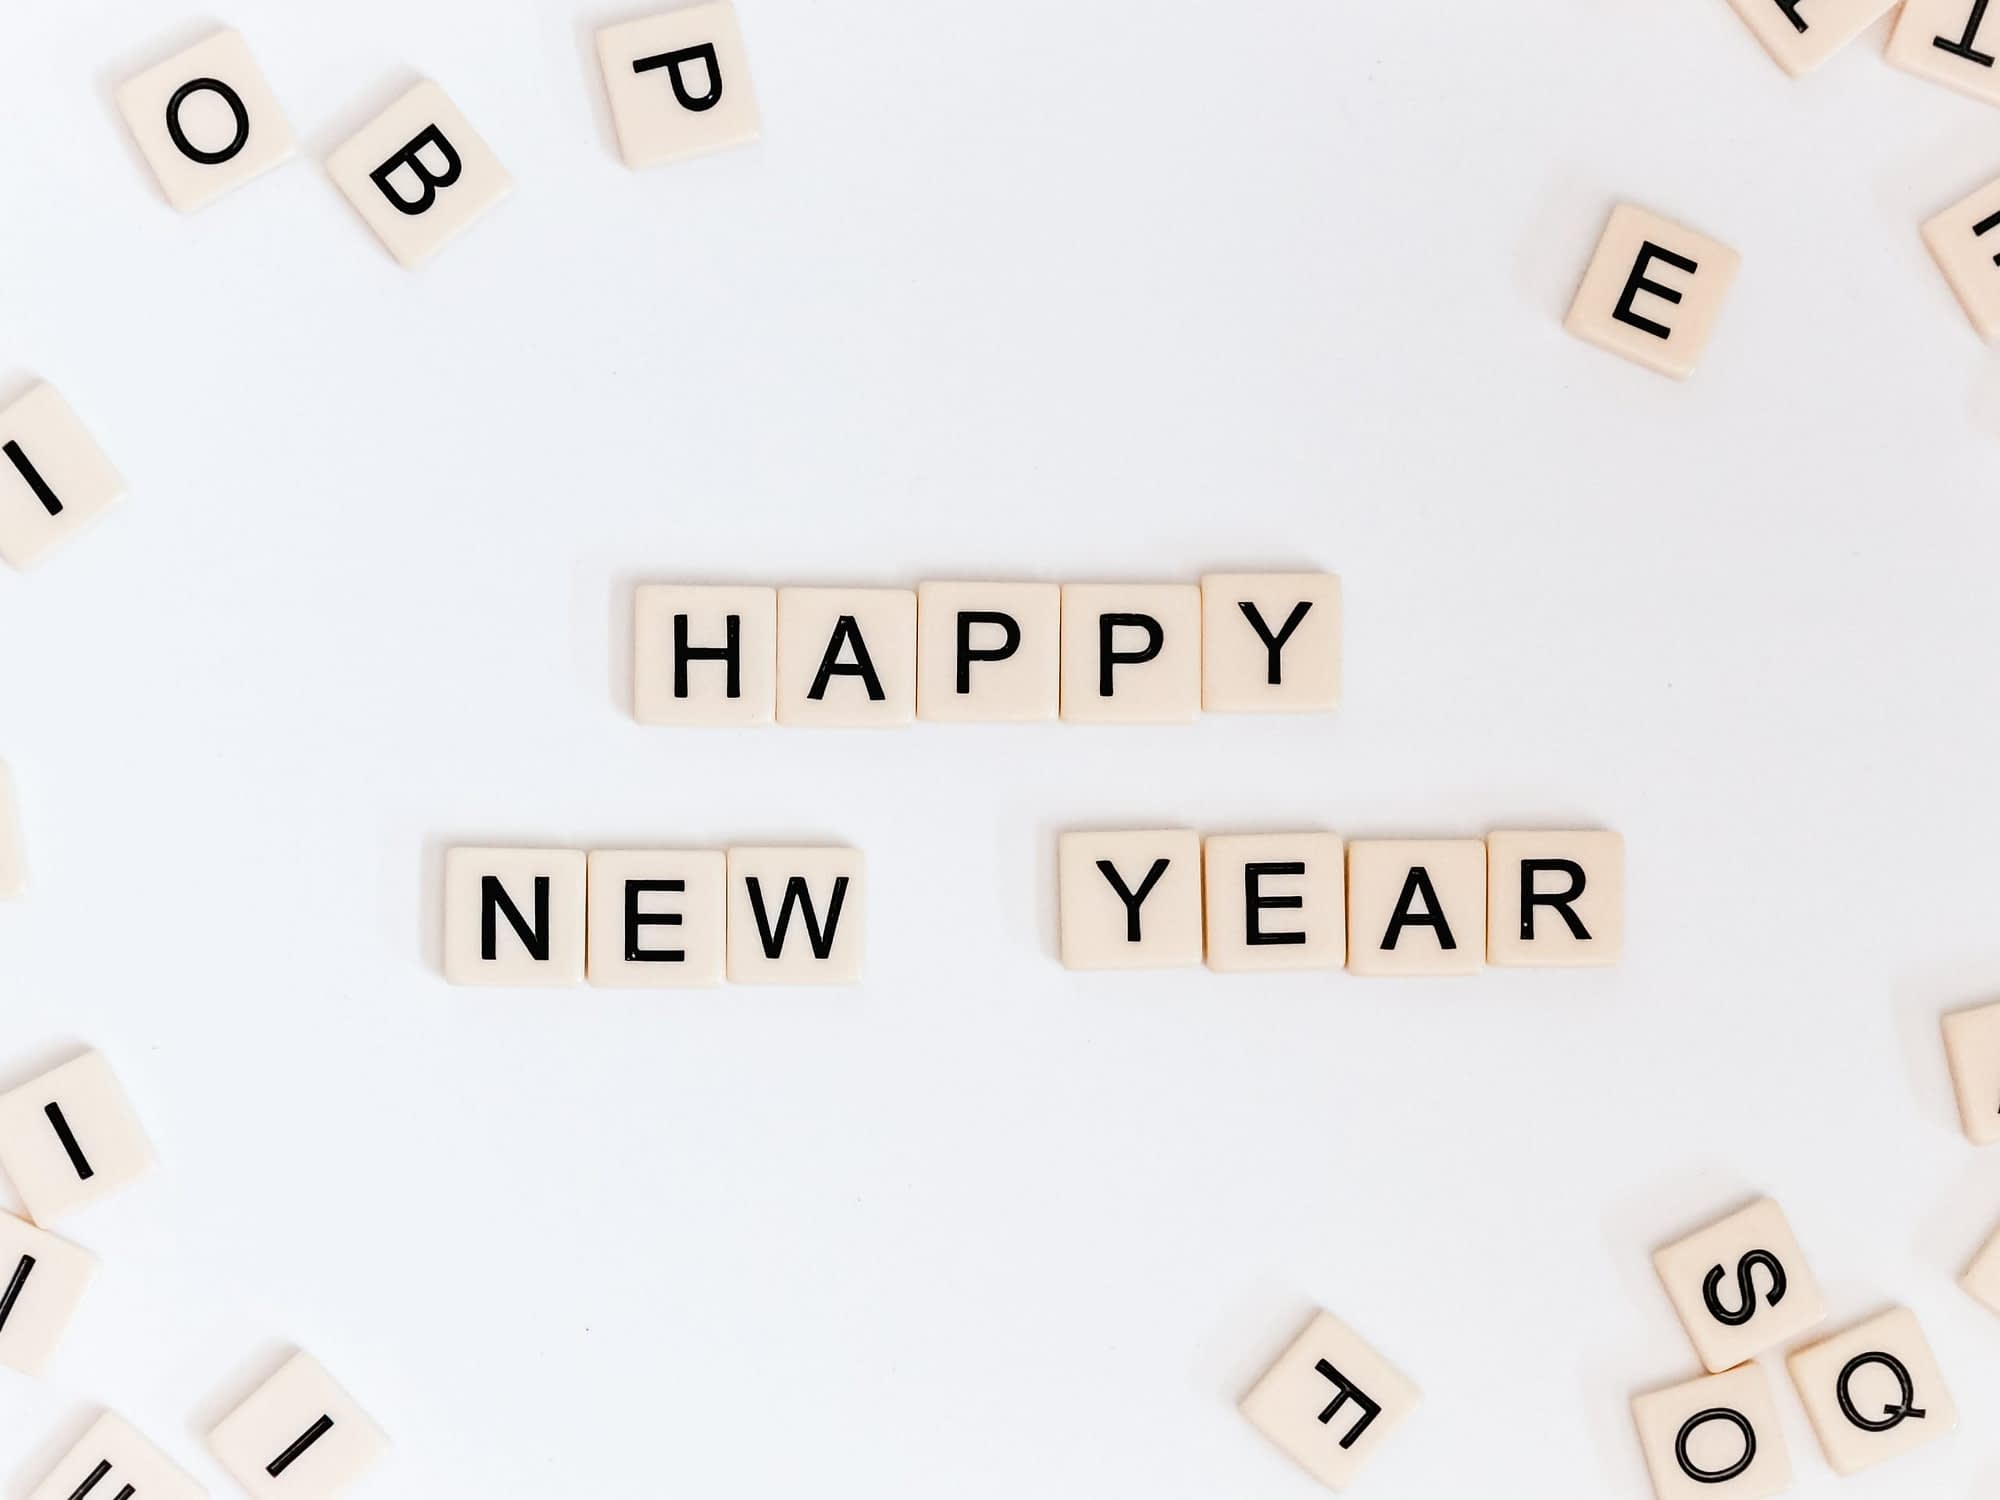 Why Include Digital Marketing as One of Your Business's New Year's Resolutions?